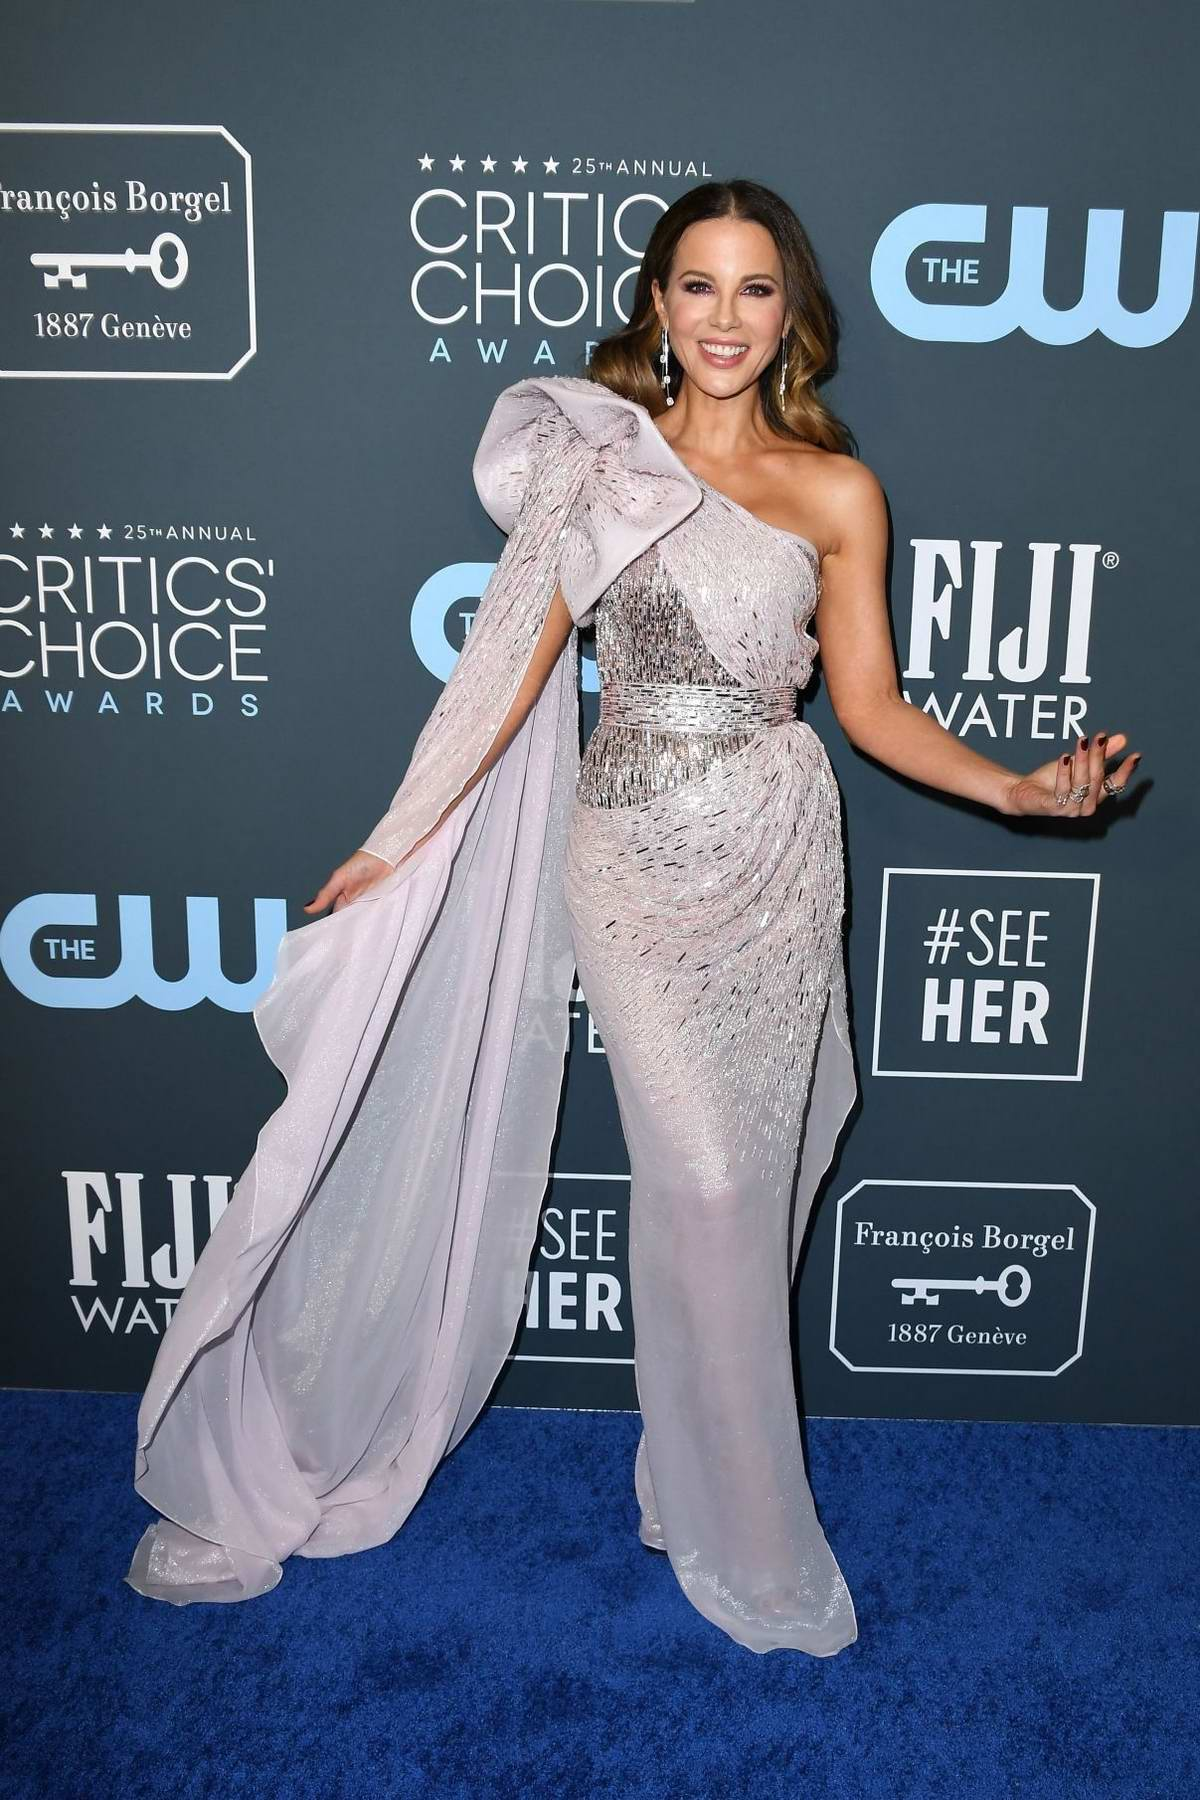 Kate Beckinsale attends the 25th Annual Critics' Choice Awards at Barker Hangar in Santa Monica, California